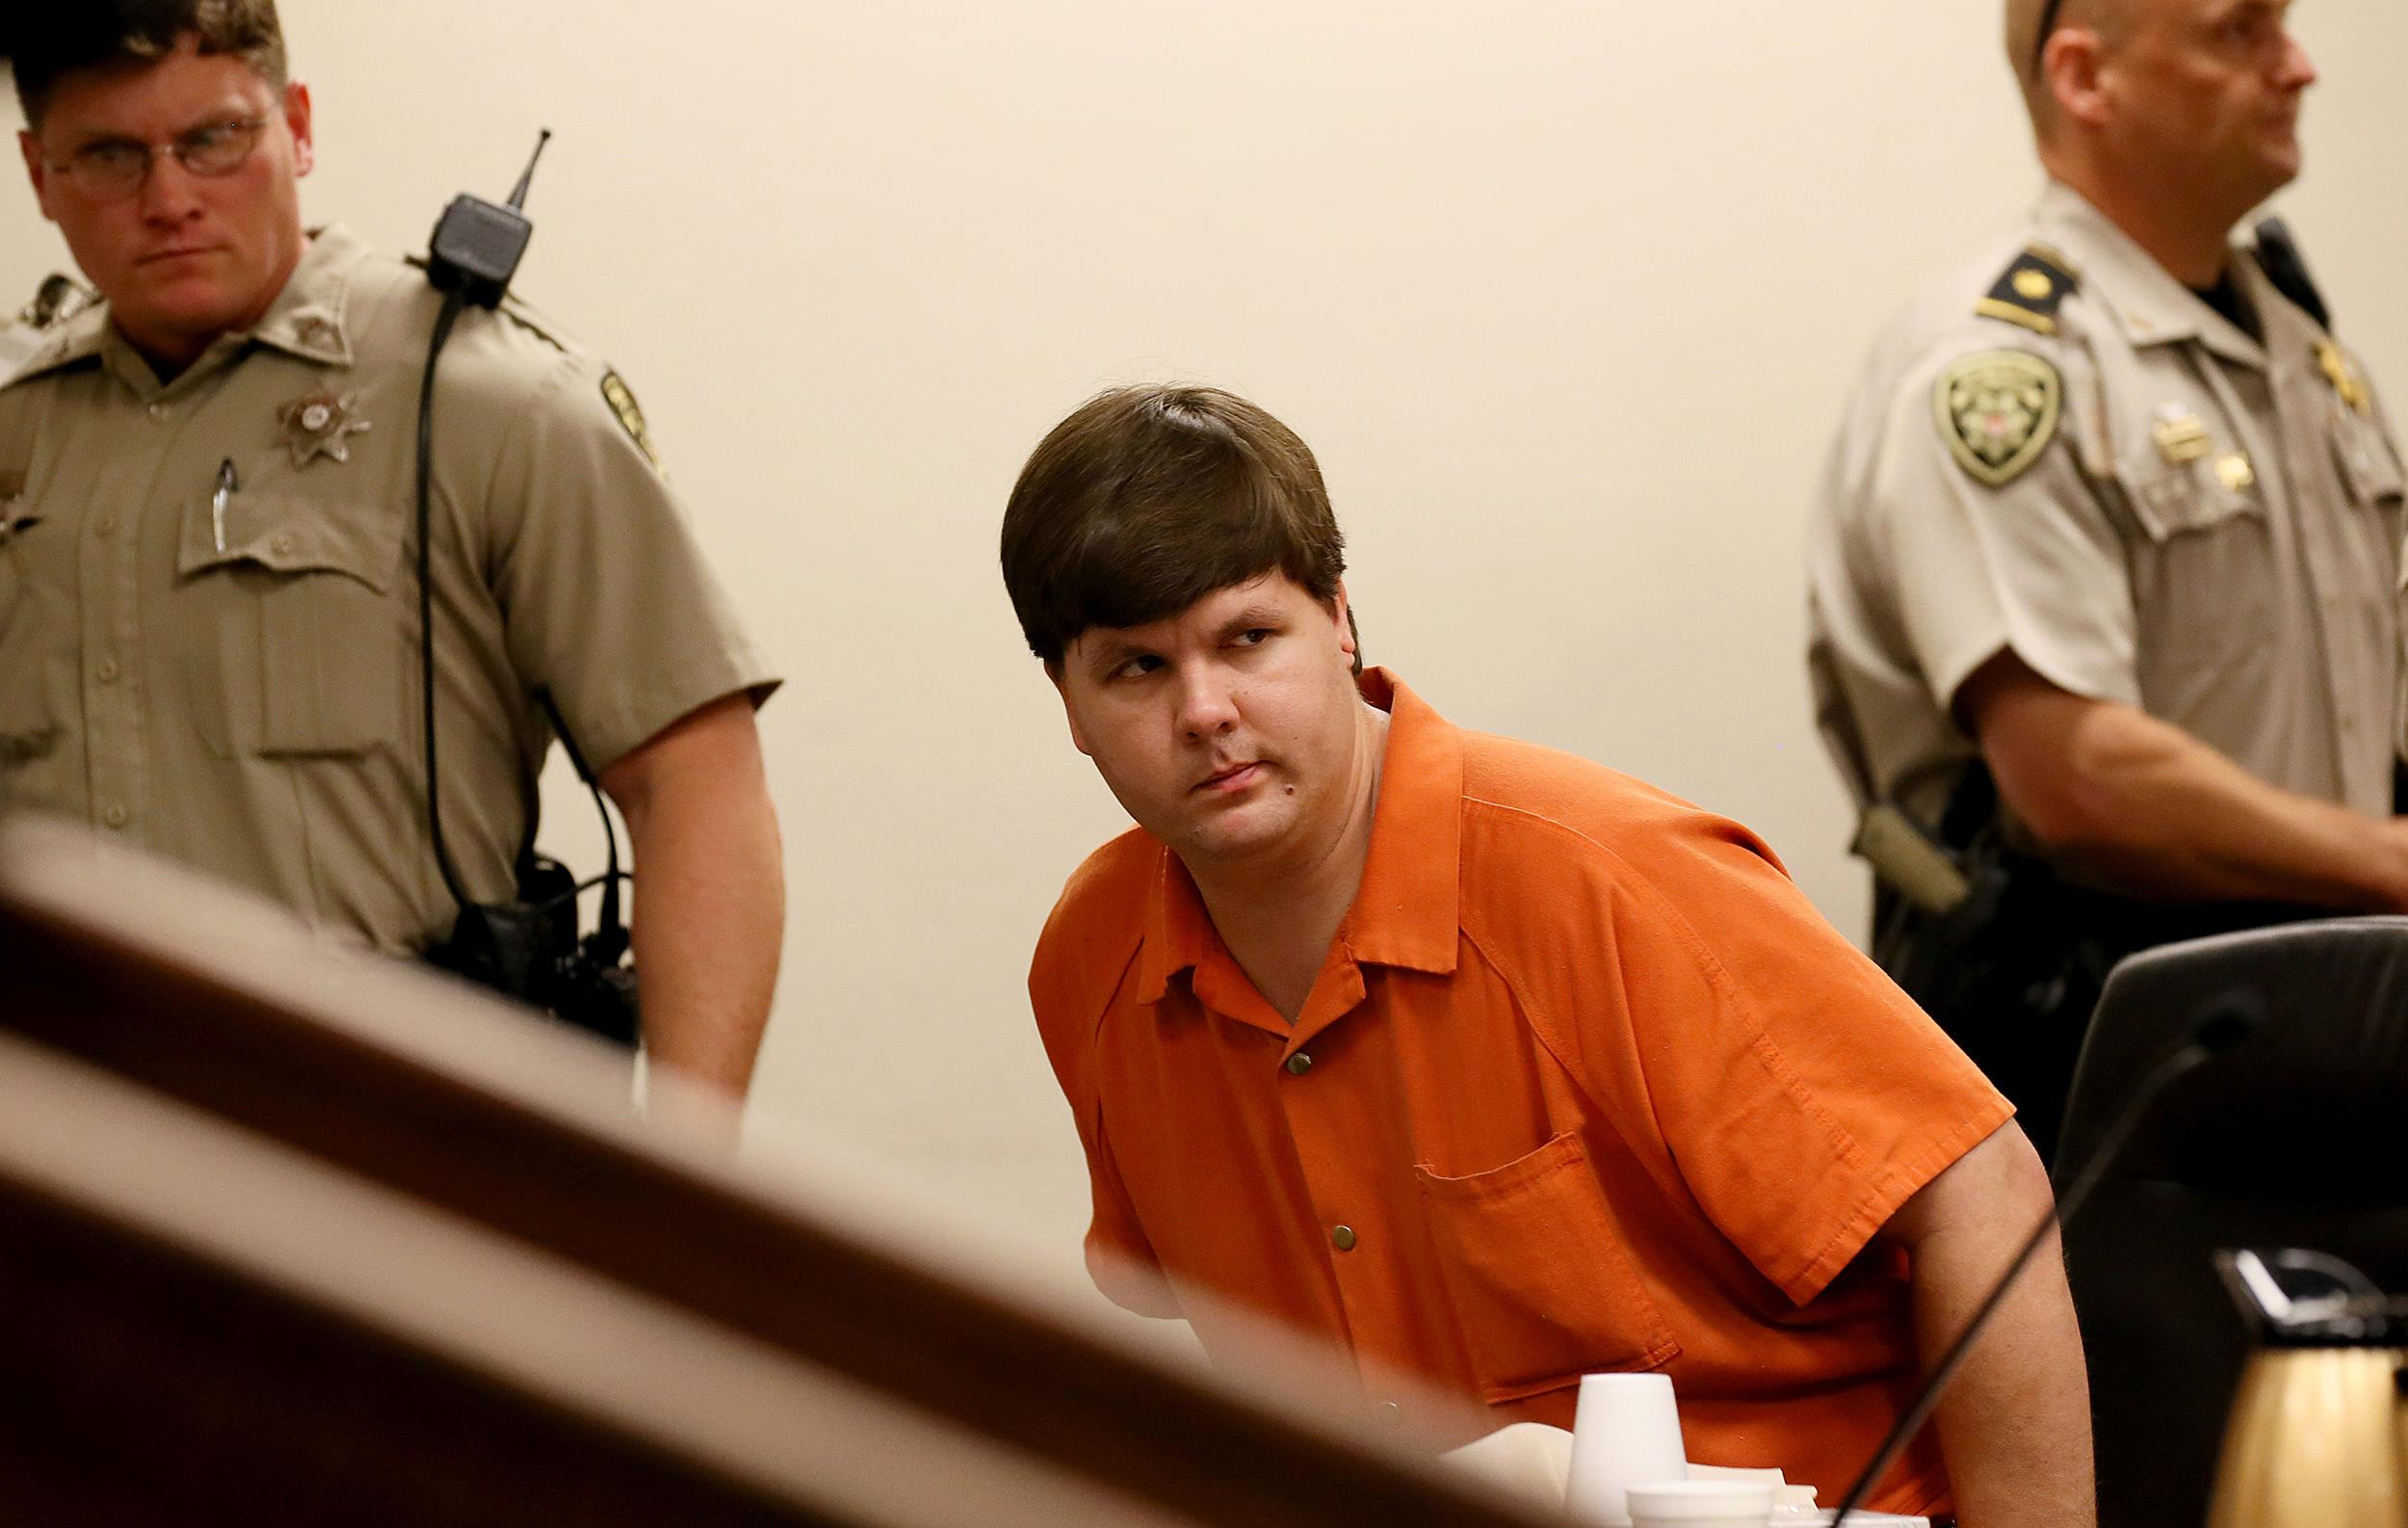 Justin Ross Harris, the father of a toddler who died after police say he was left in a hot car for about seven hours, is escorted out of Cobb County Magistrate Court after he was denied bond, Thursday, July 3, 2014, in Marietta, Ga.